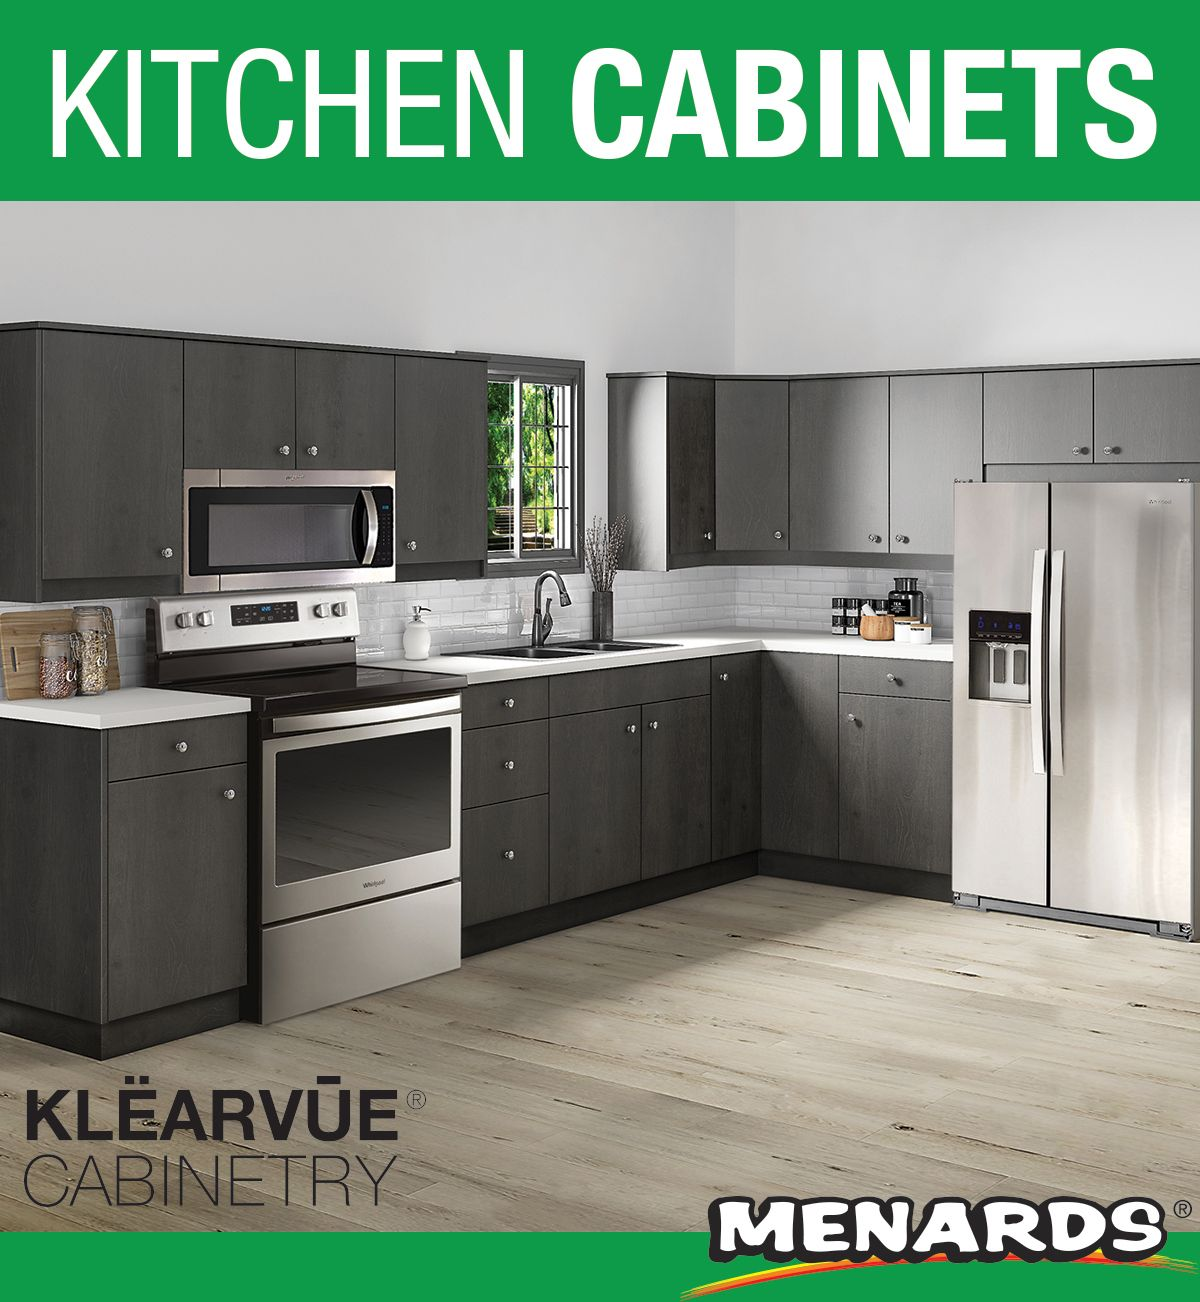 Klearvue Varsta Charcoal L Shaped Kitchen W 10 Cabinet Cabinets Only In 2020 Menards Kitchen Unfinished Kitchen Cabinets Kitchen